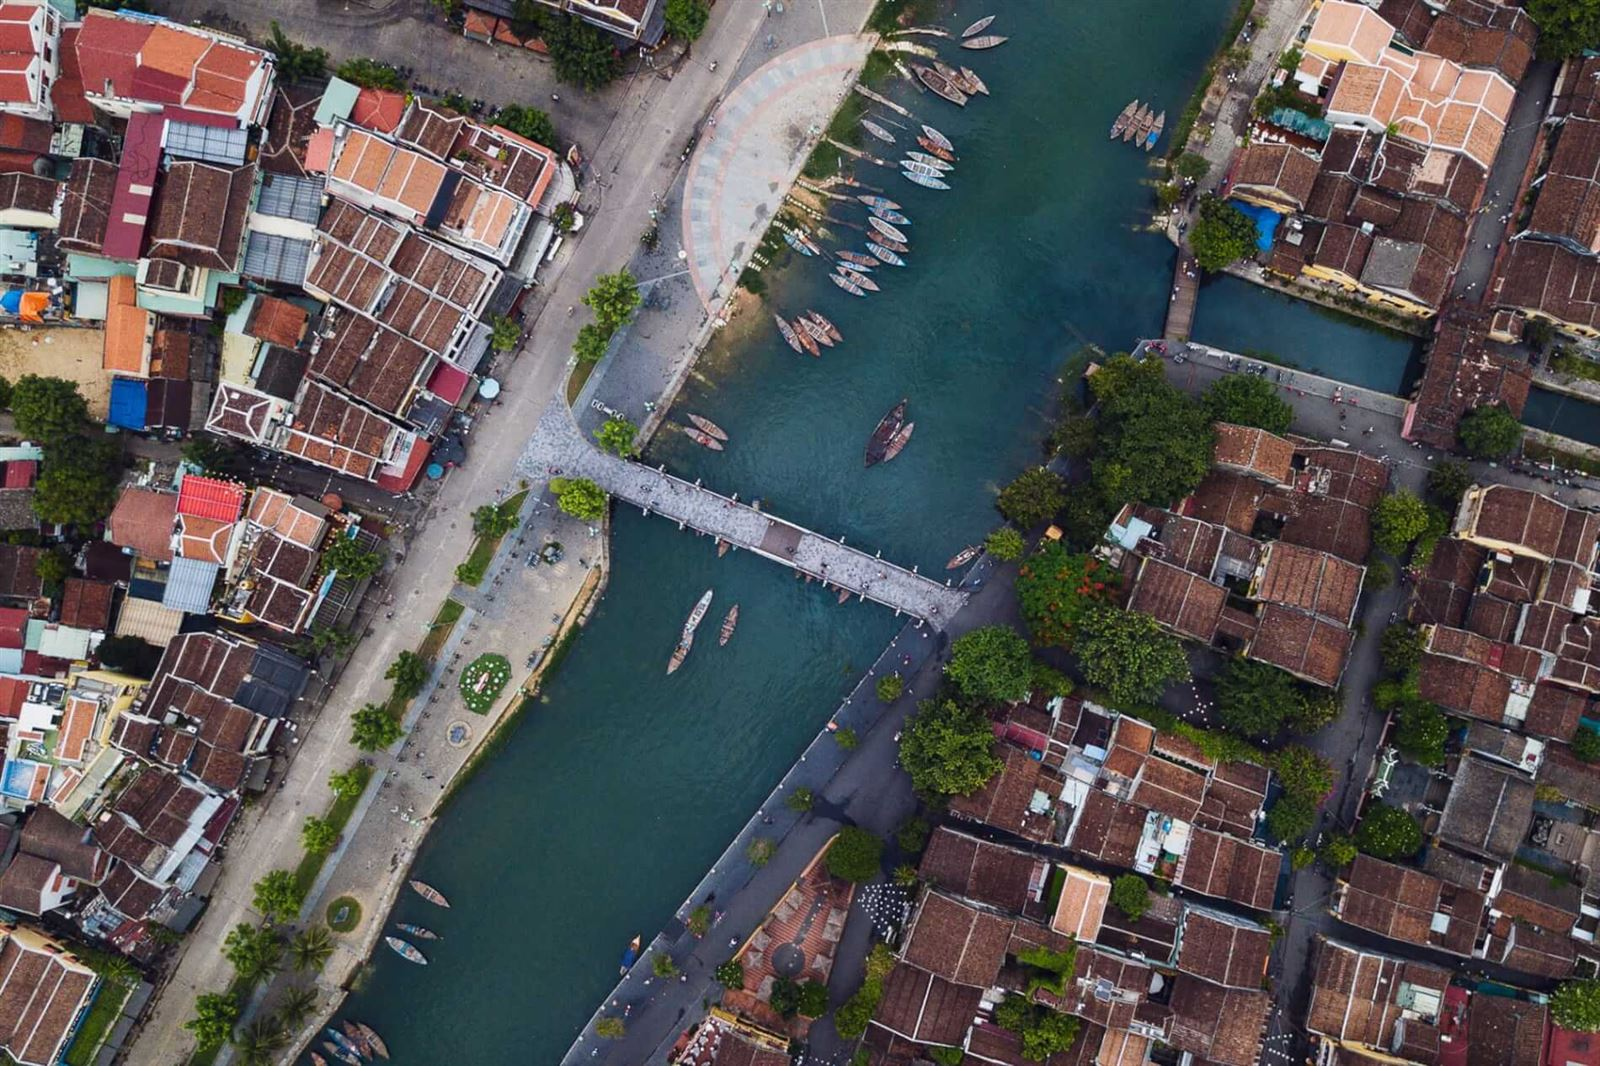 hoi an ancient town from the sky